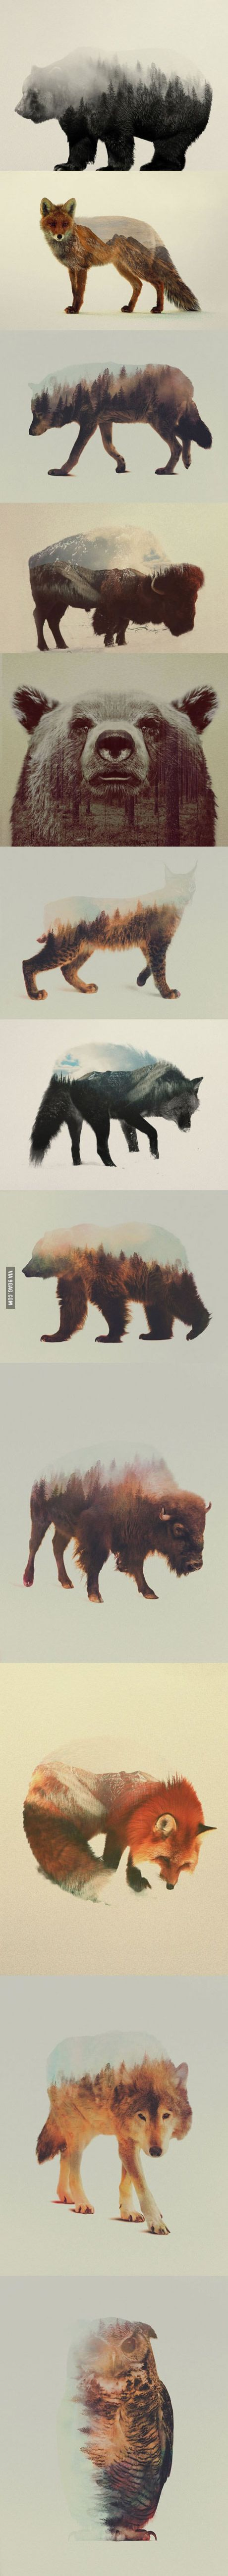 Double Exposure Portraits of Animals Reflecting Their Habitat by Andreas Lie on 9GAG